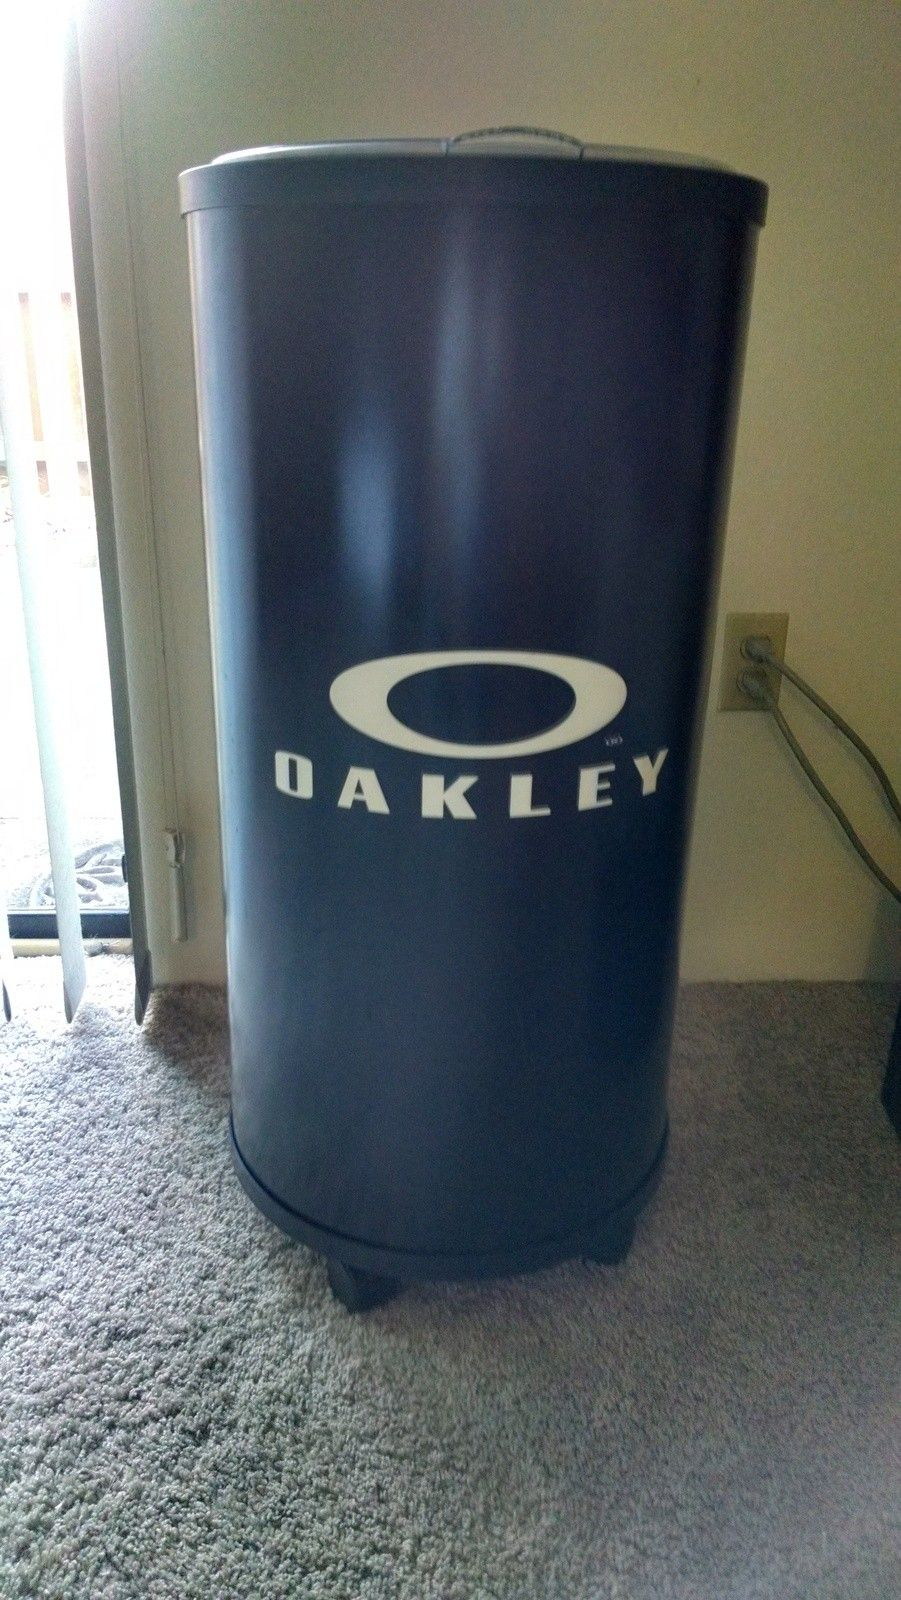 Oakley cooler and Accessory rack (SWFL) - 2013-11-26 15.51.54.jpg